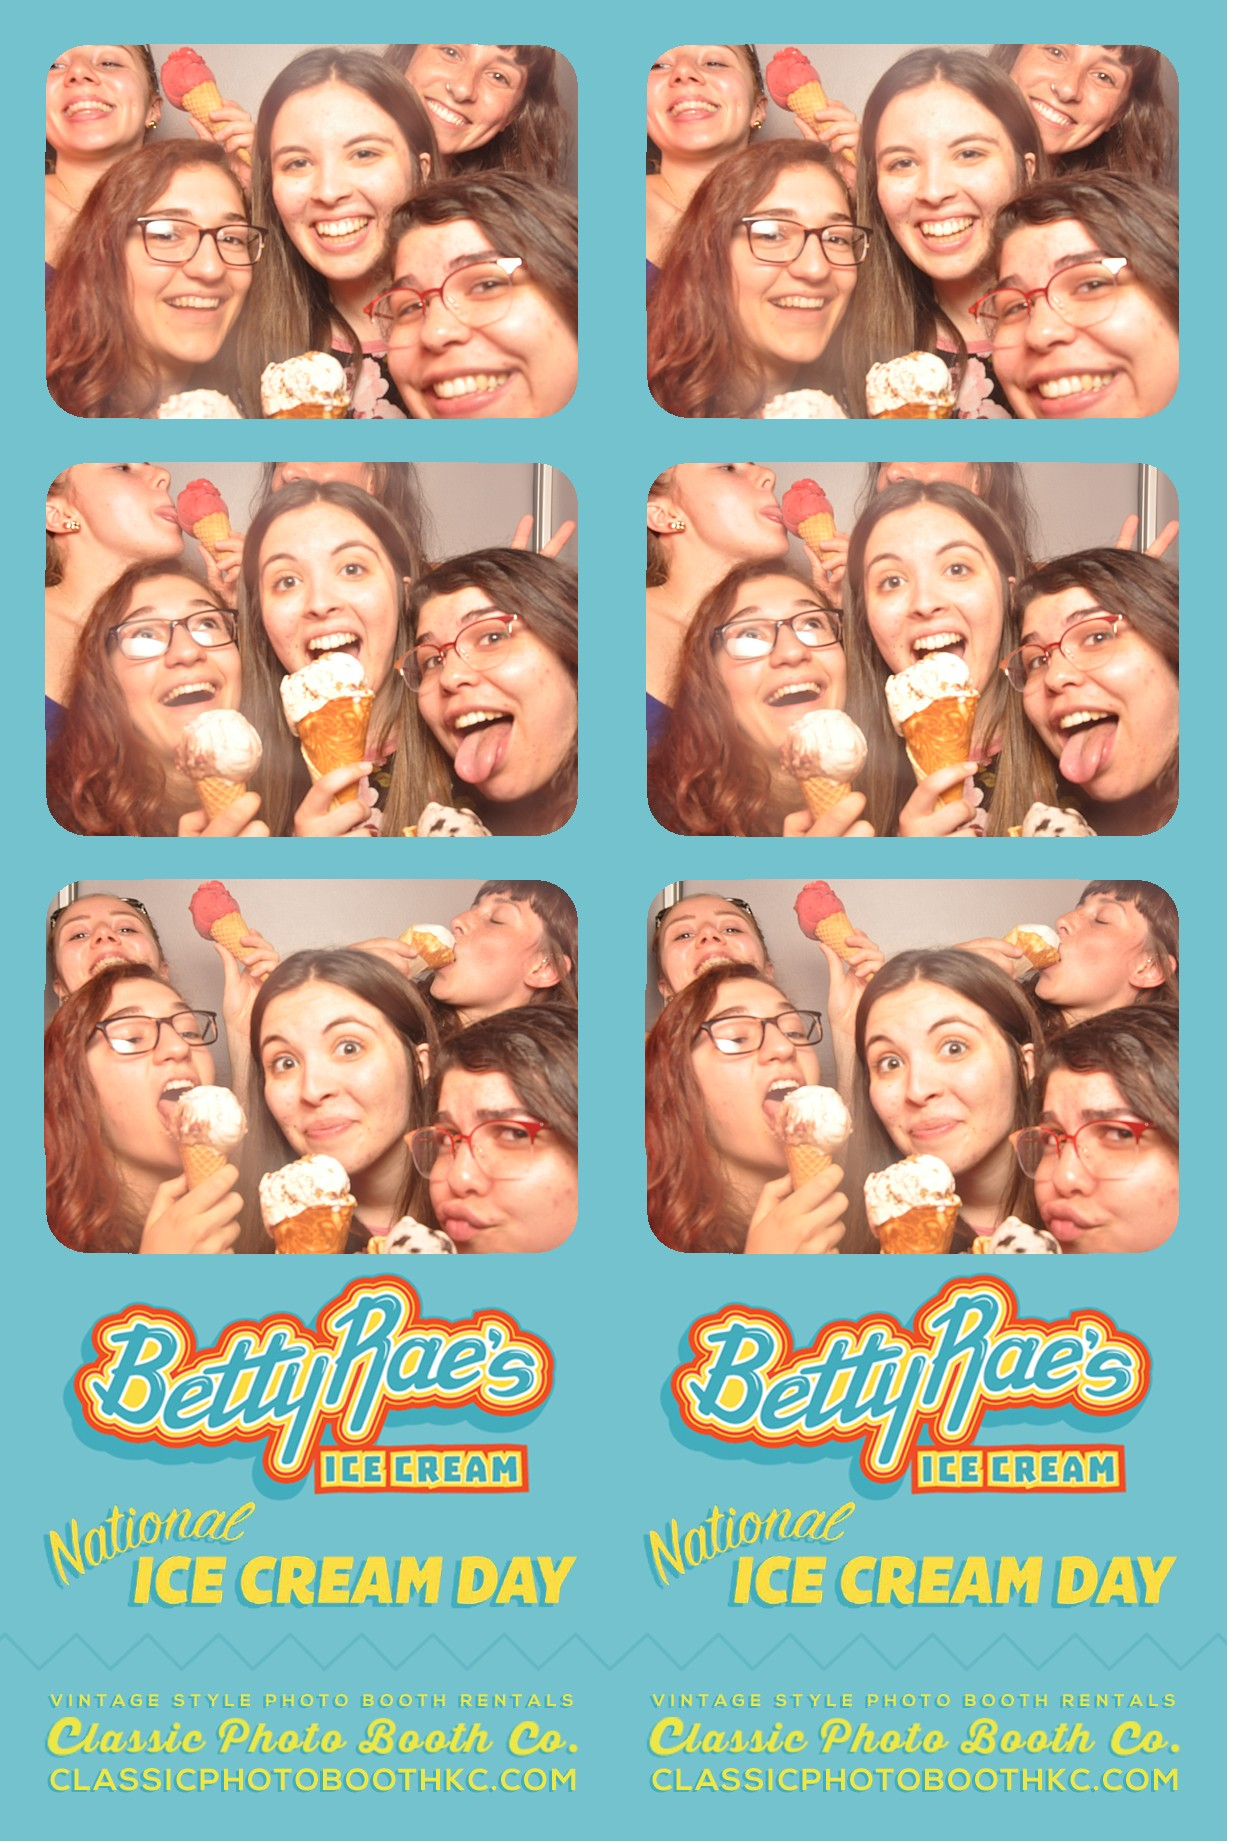 Classic Photo Booth Co | Bark Profile and Reviews